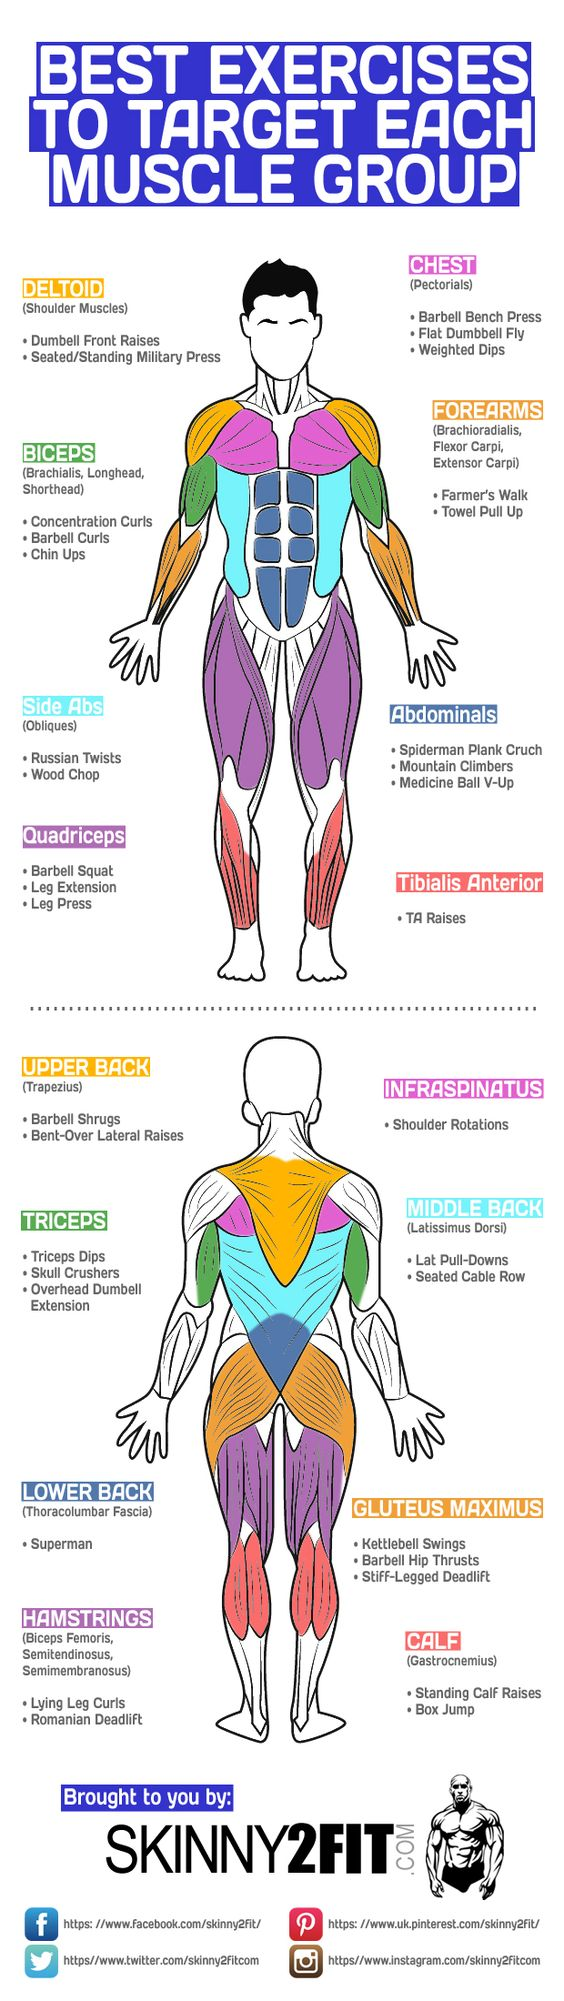 Of course compound exercises like the bench press, squat and deadlift are good…